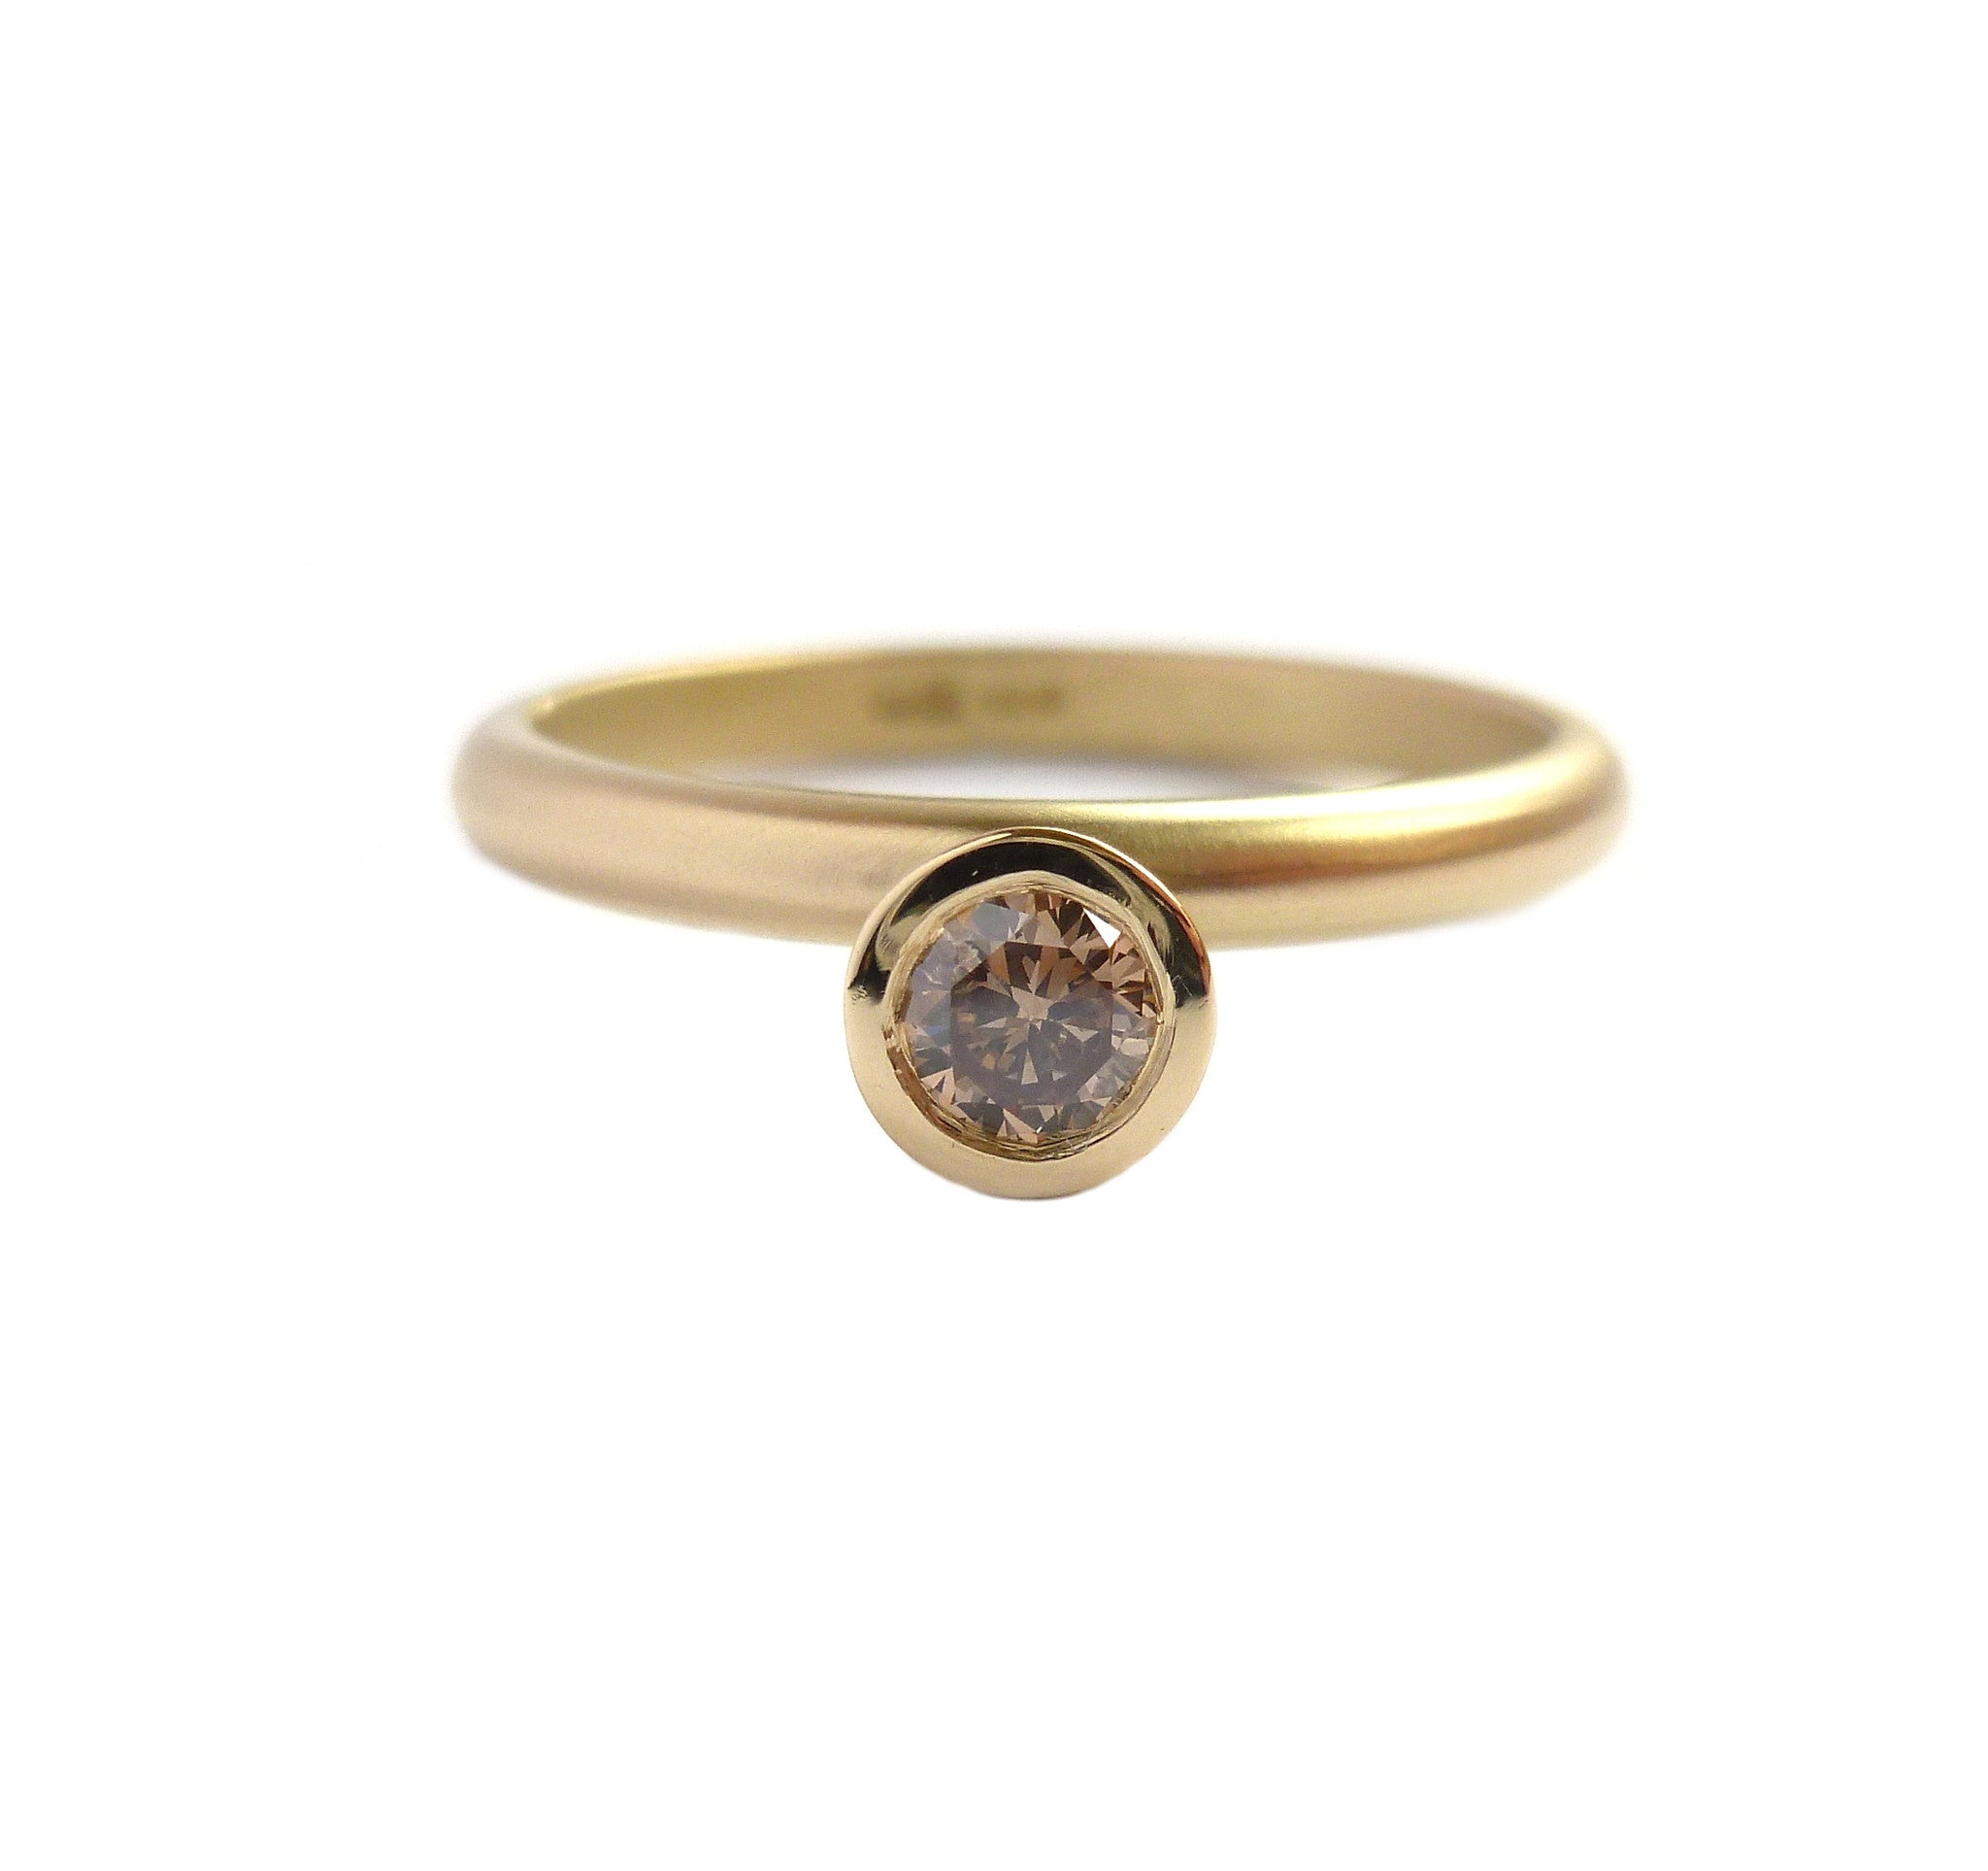 18k yellow gold and champagne diamond ring nrg3cd